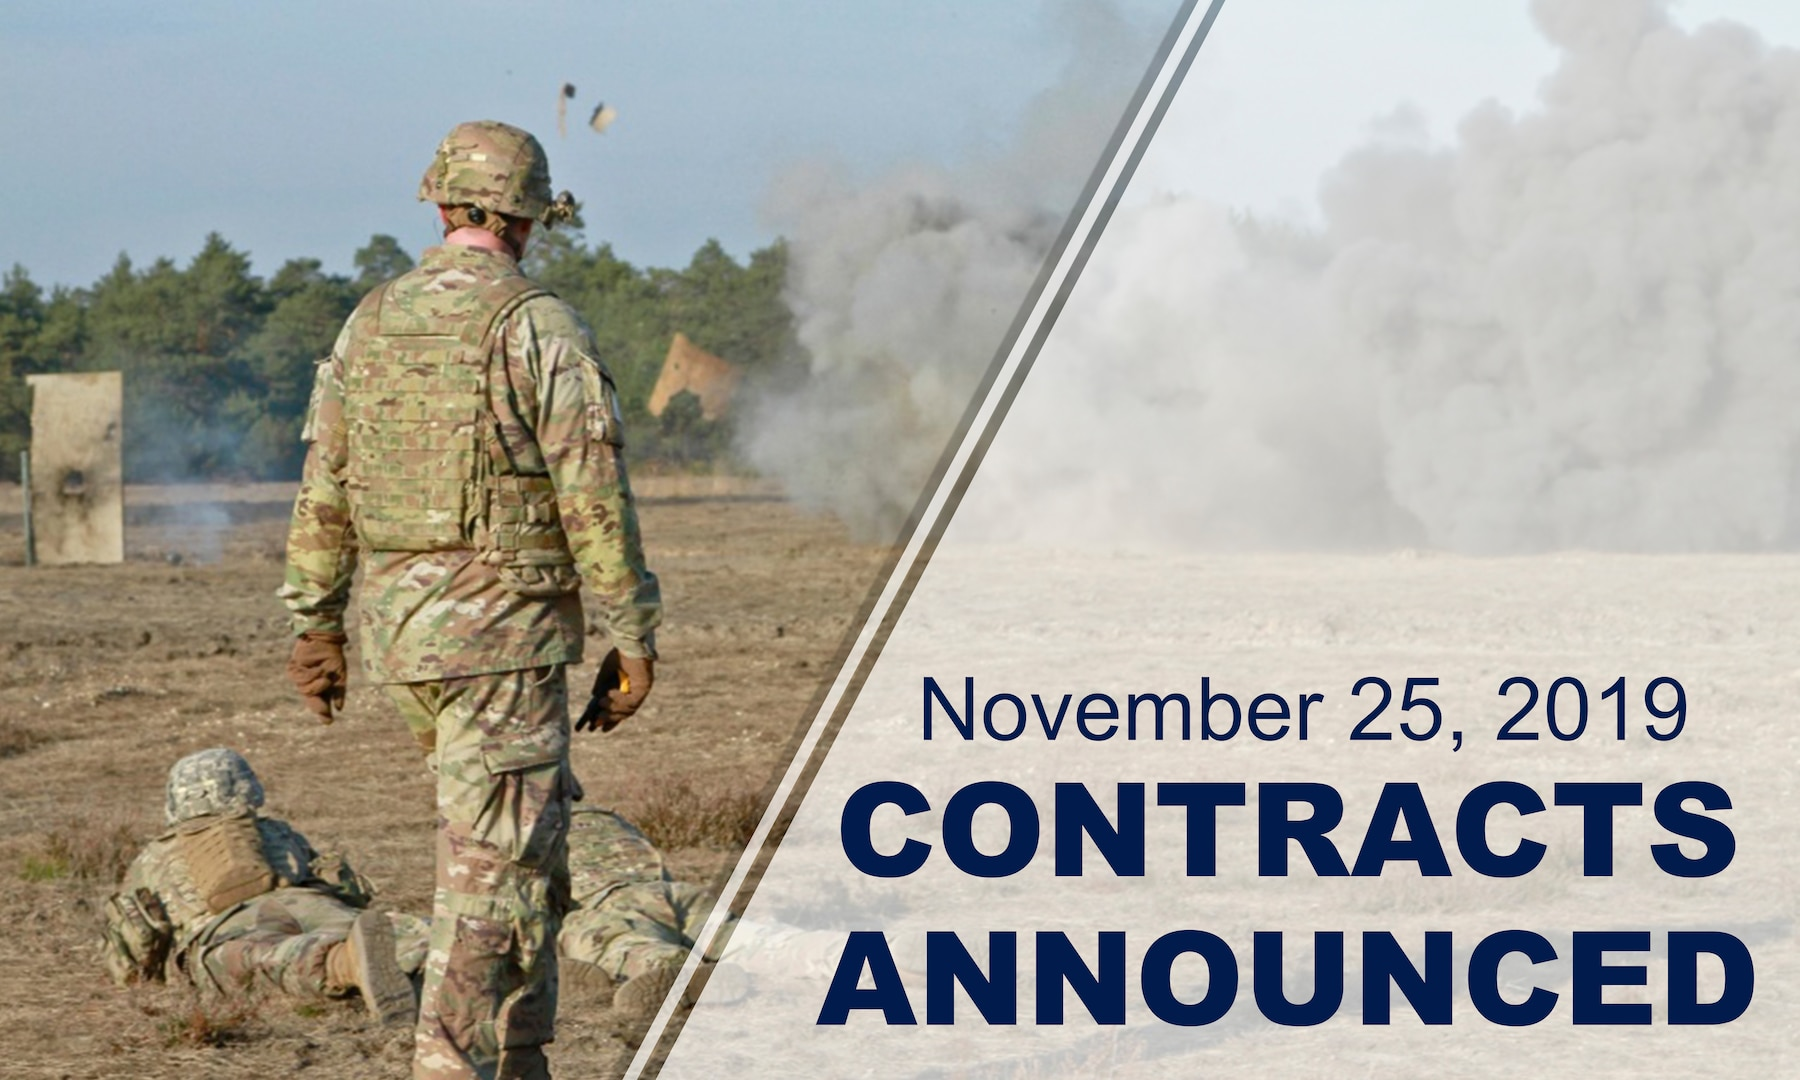 Soldier standing outside watches explosion in background. Text reads: November 25, 2019 Contracts Announced.